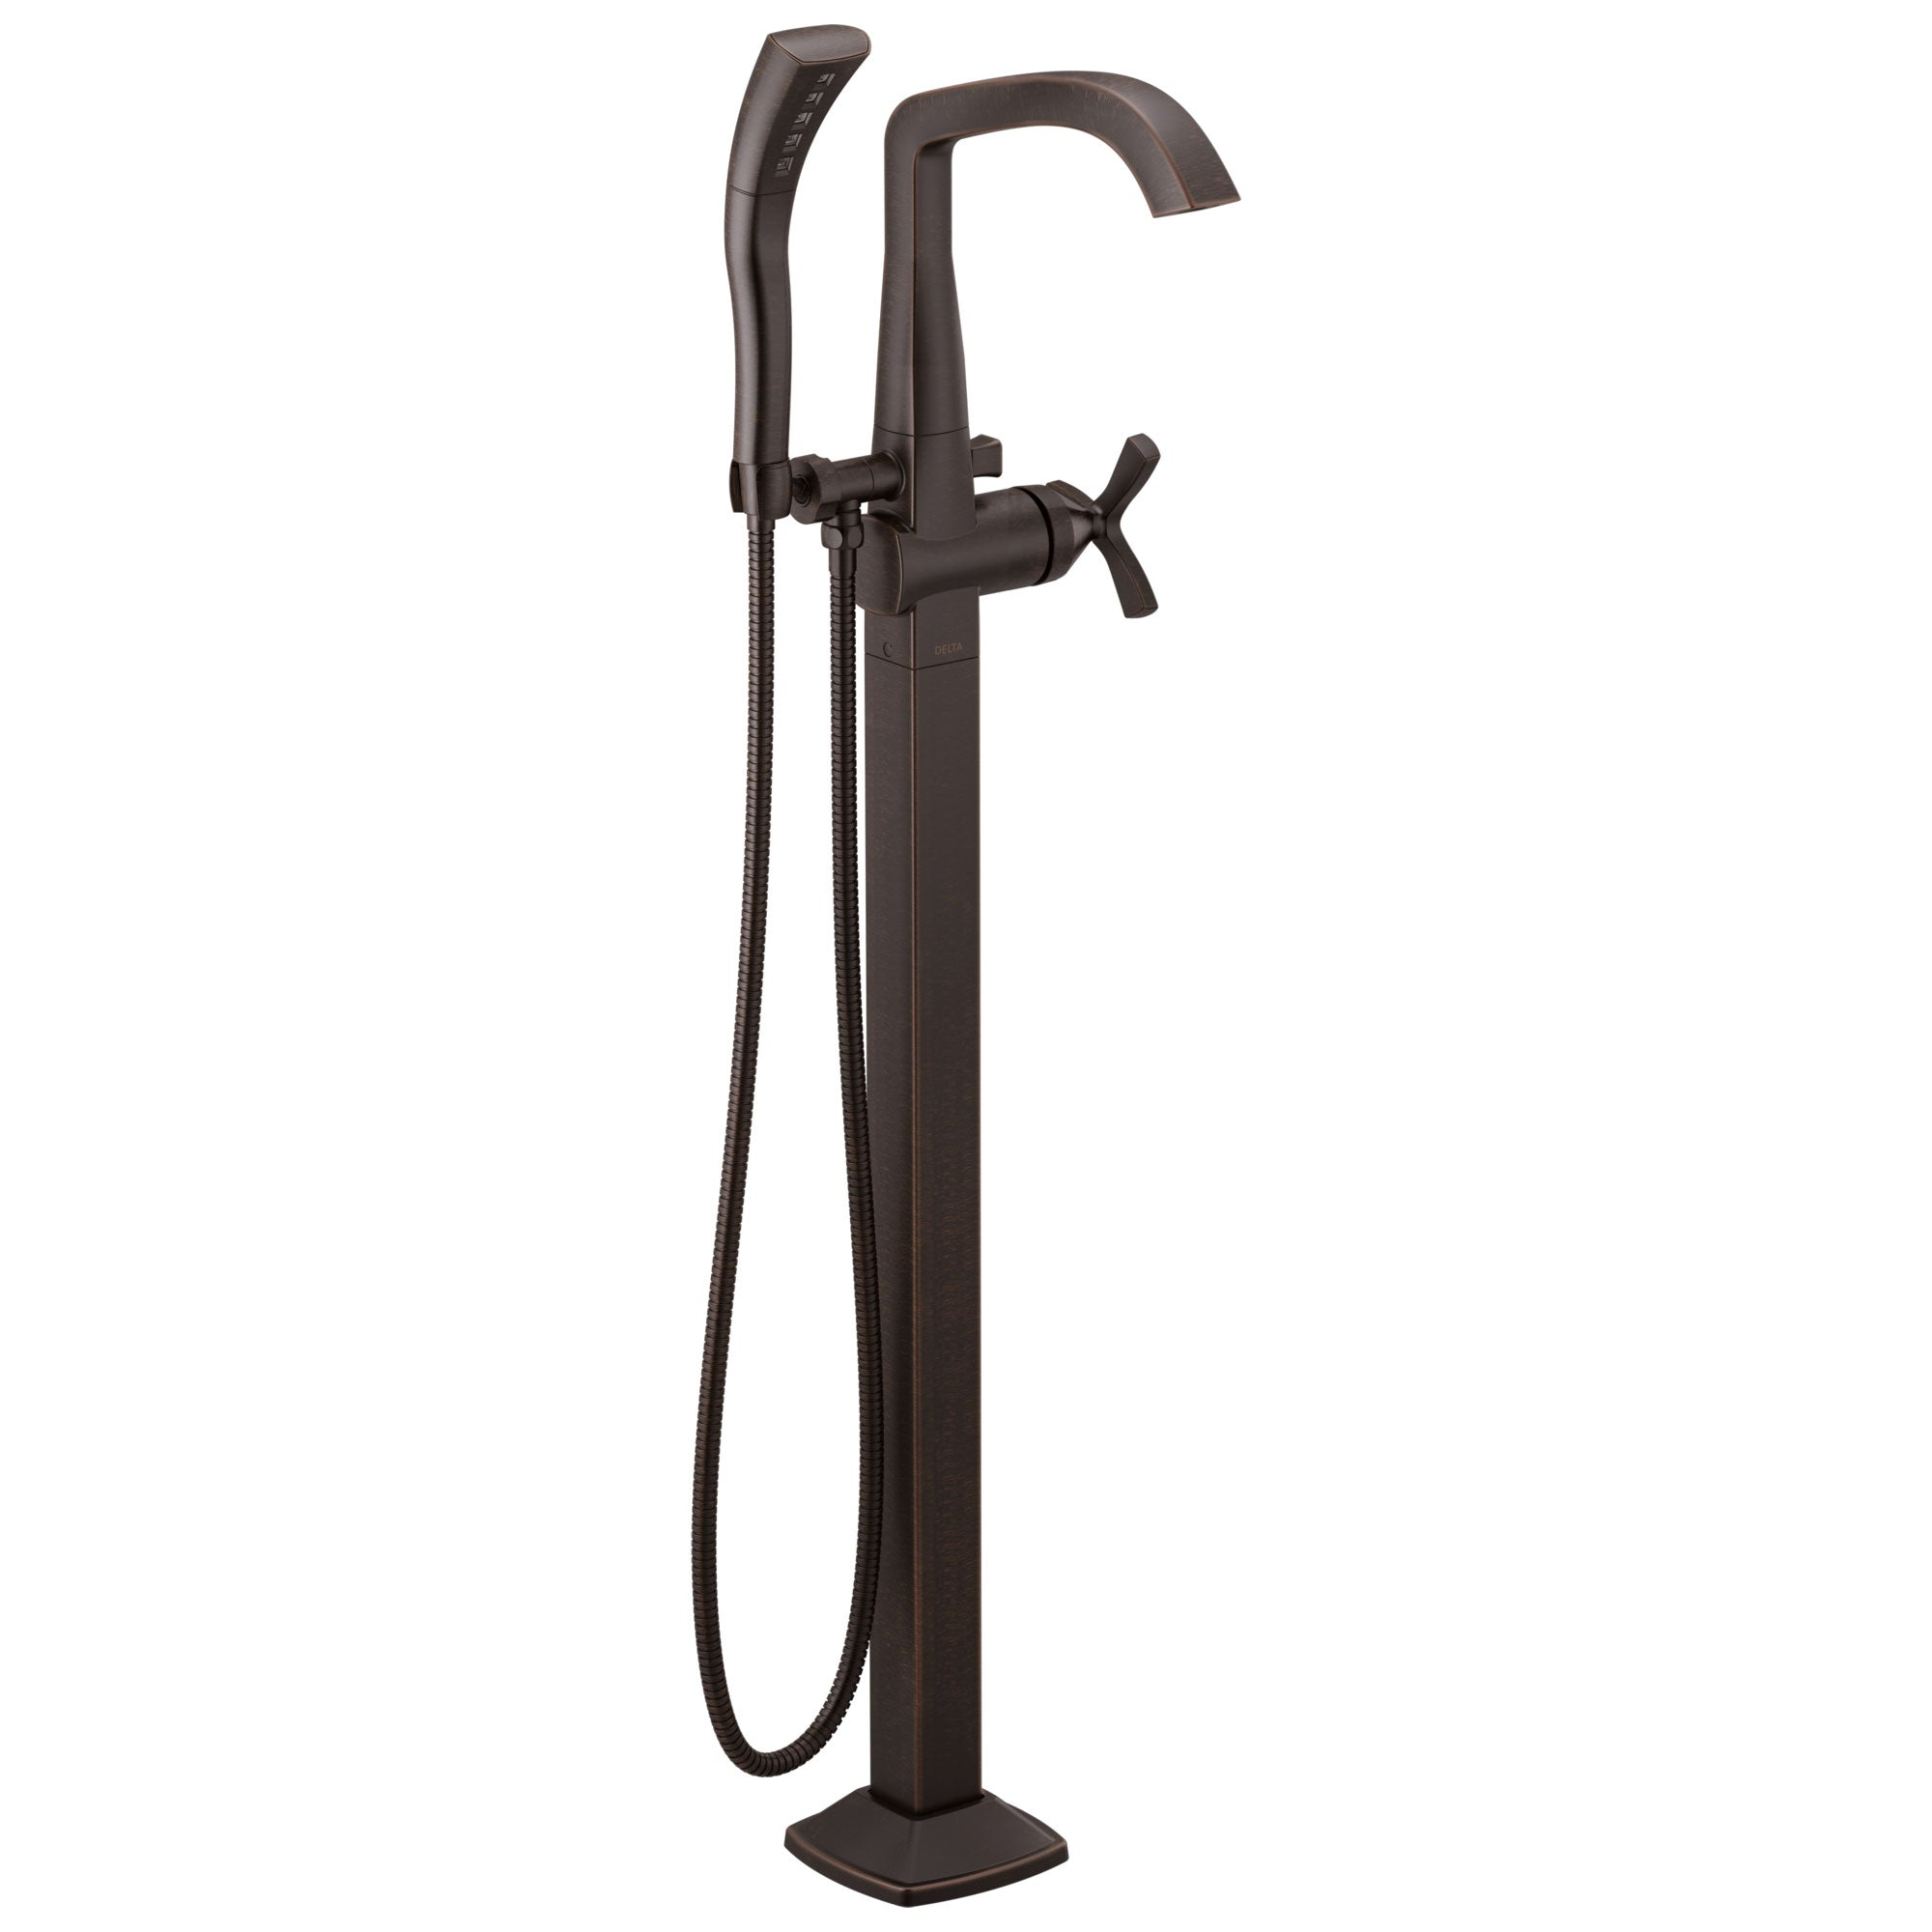 Delta Stryke Venetian Bronze Finish Single Cross Handle Floor Mount Tub Filler Faucet with Hand Sprayer Trim Kit (Requires Valve) DT47766RBFL